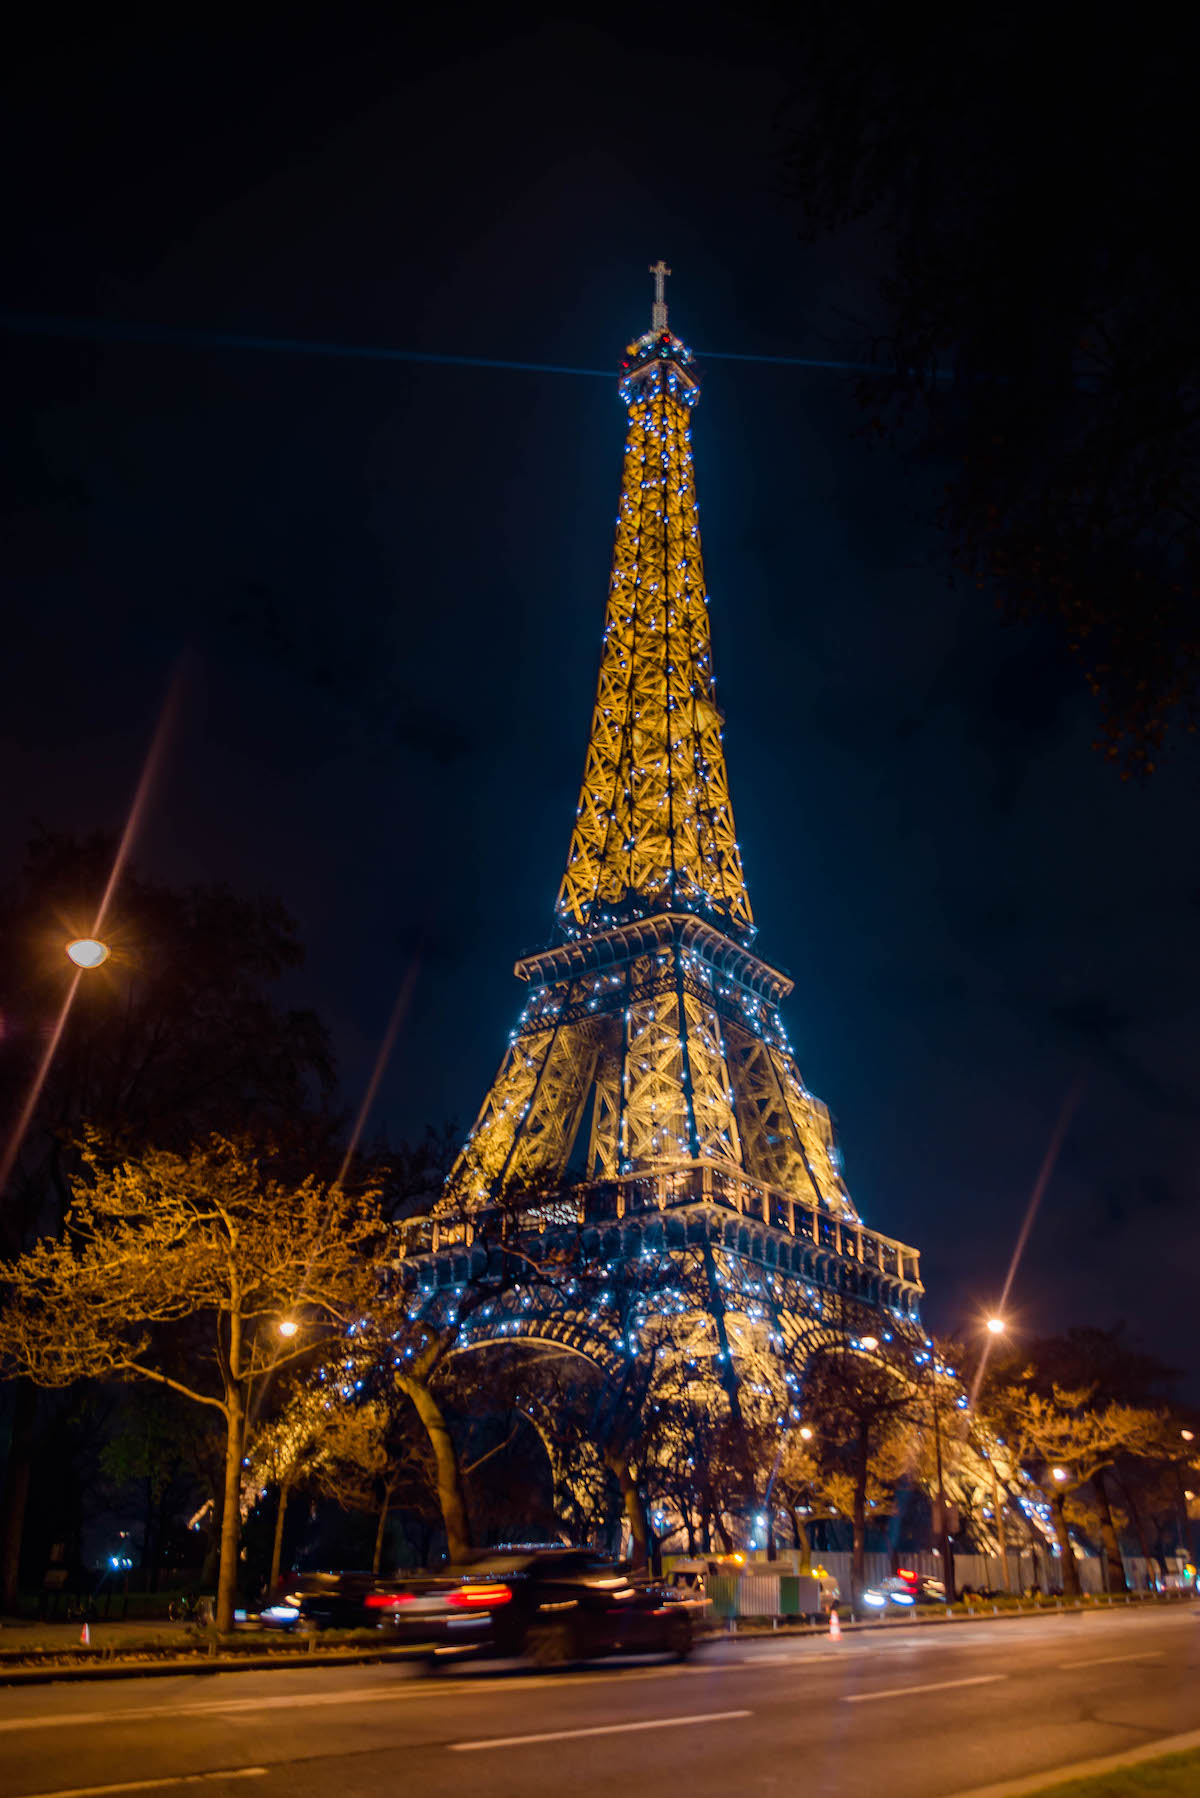 Eiffel Tower Light Show At Night